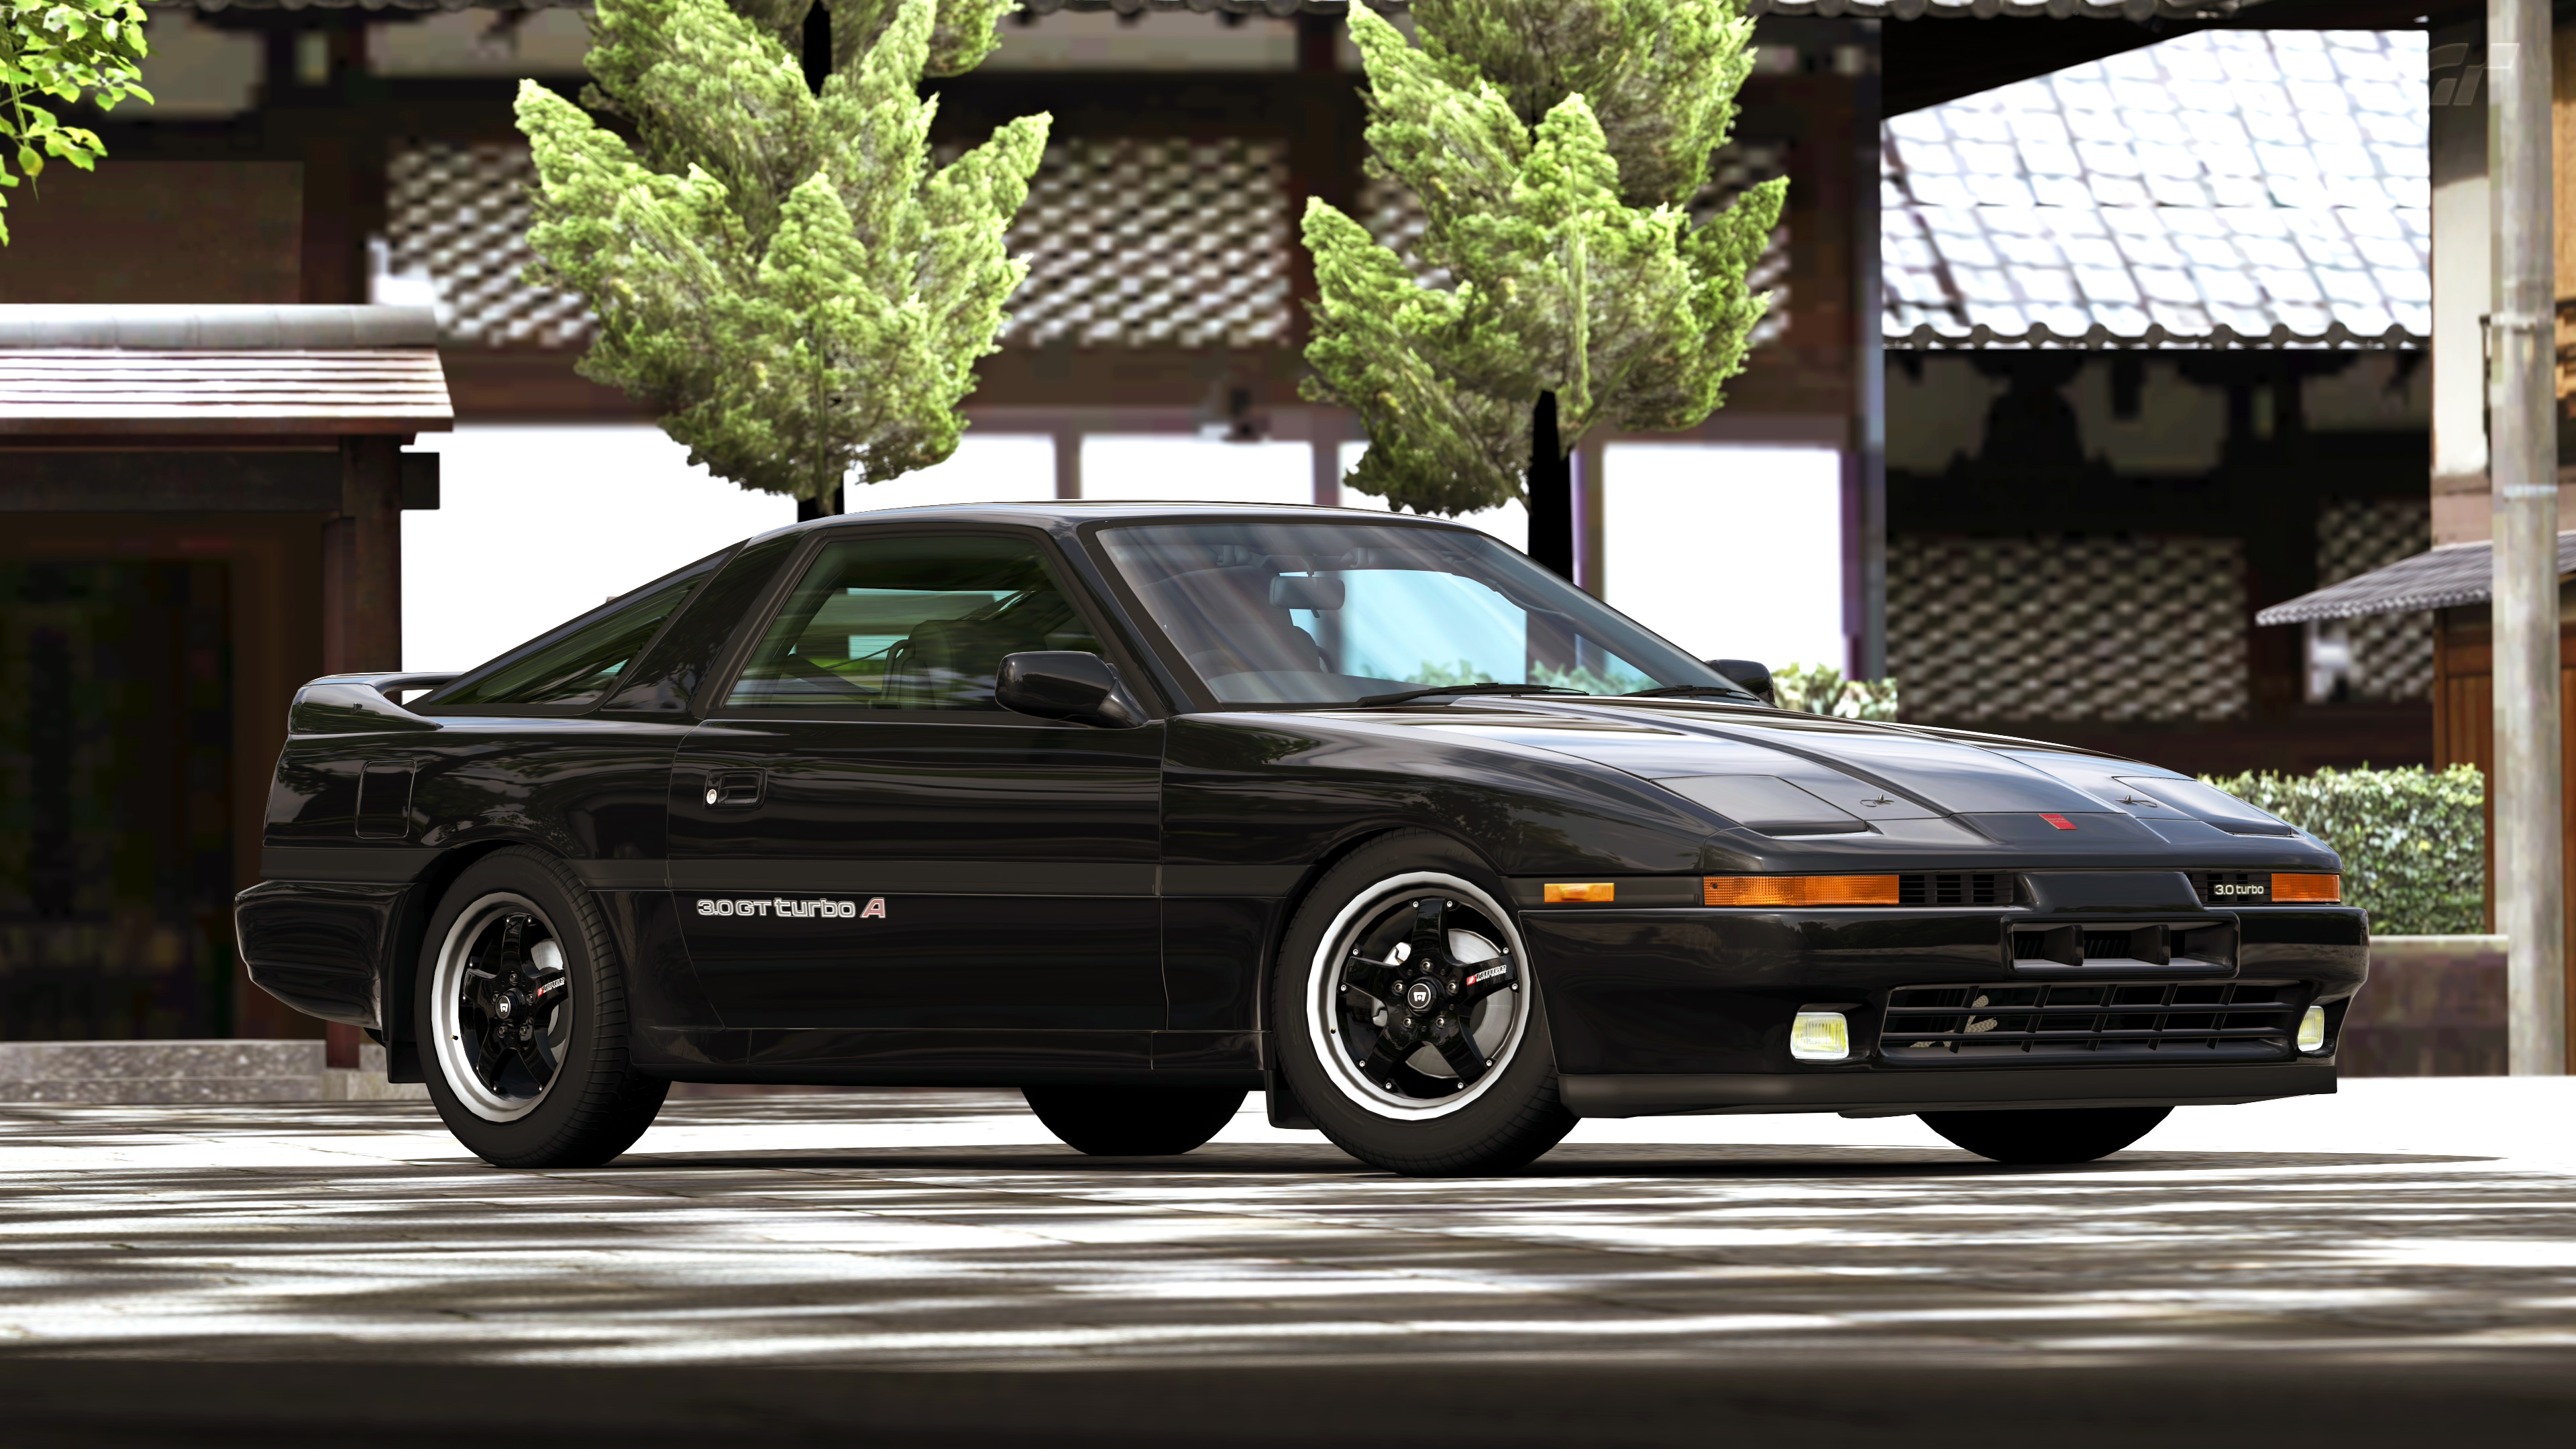 Toyota Supra 3 0 Gt Turbo A Laptimes Specs Performance